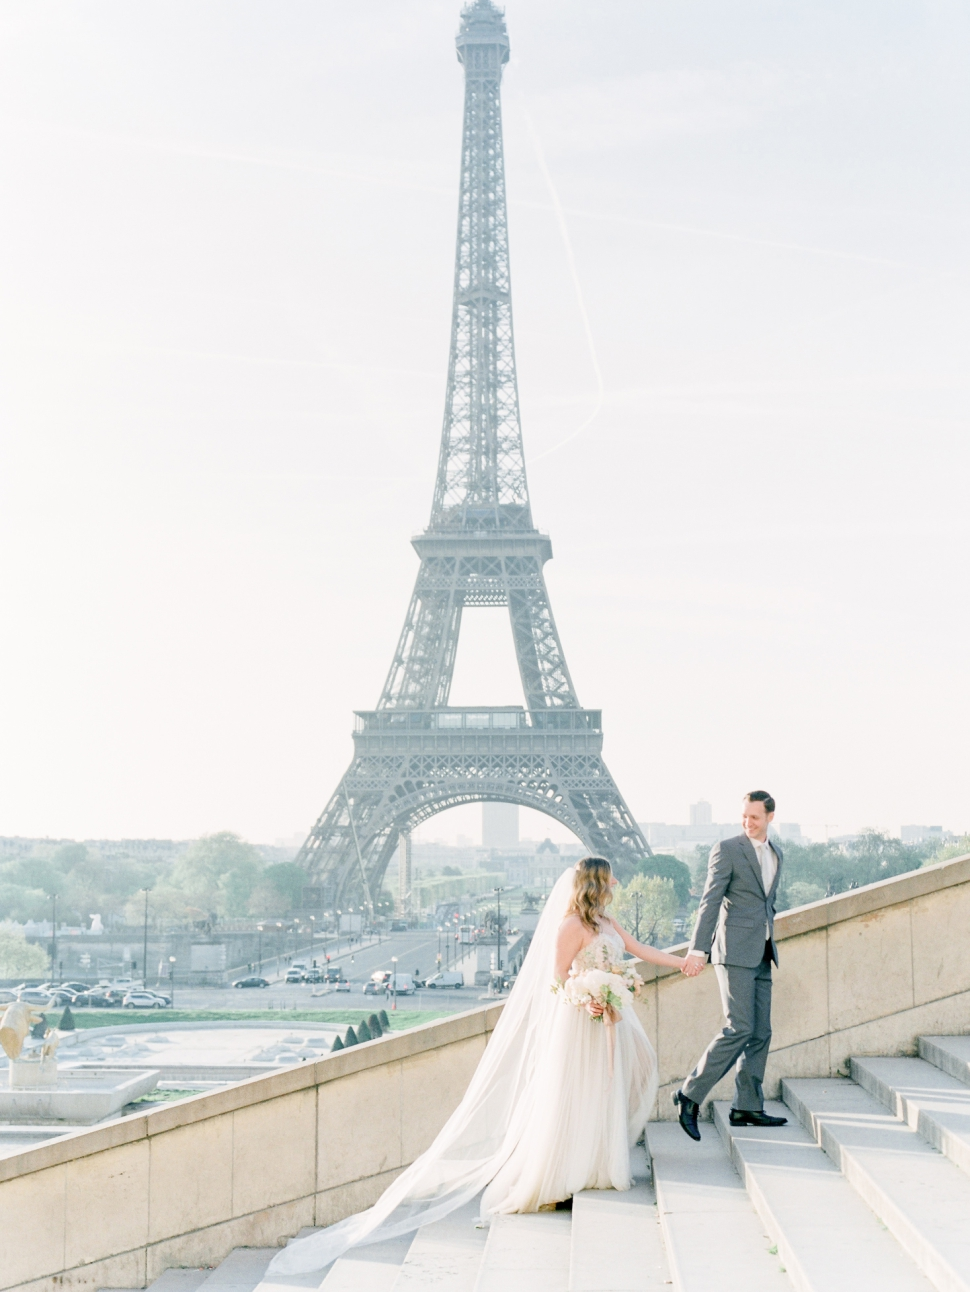 Paris-France-Destination-Wedding-Photographer-Cassi-Claire-Shangri-La-Paris-Wedding-Photos_032.jpg